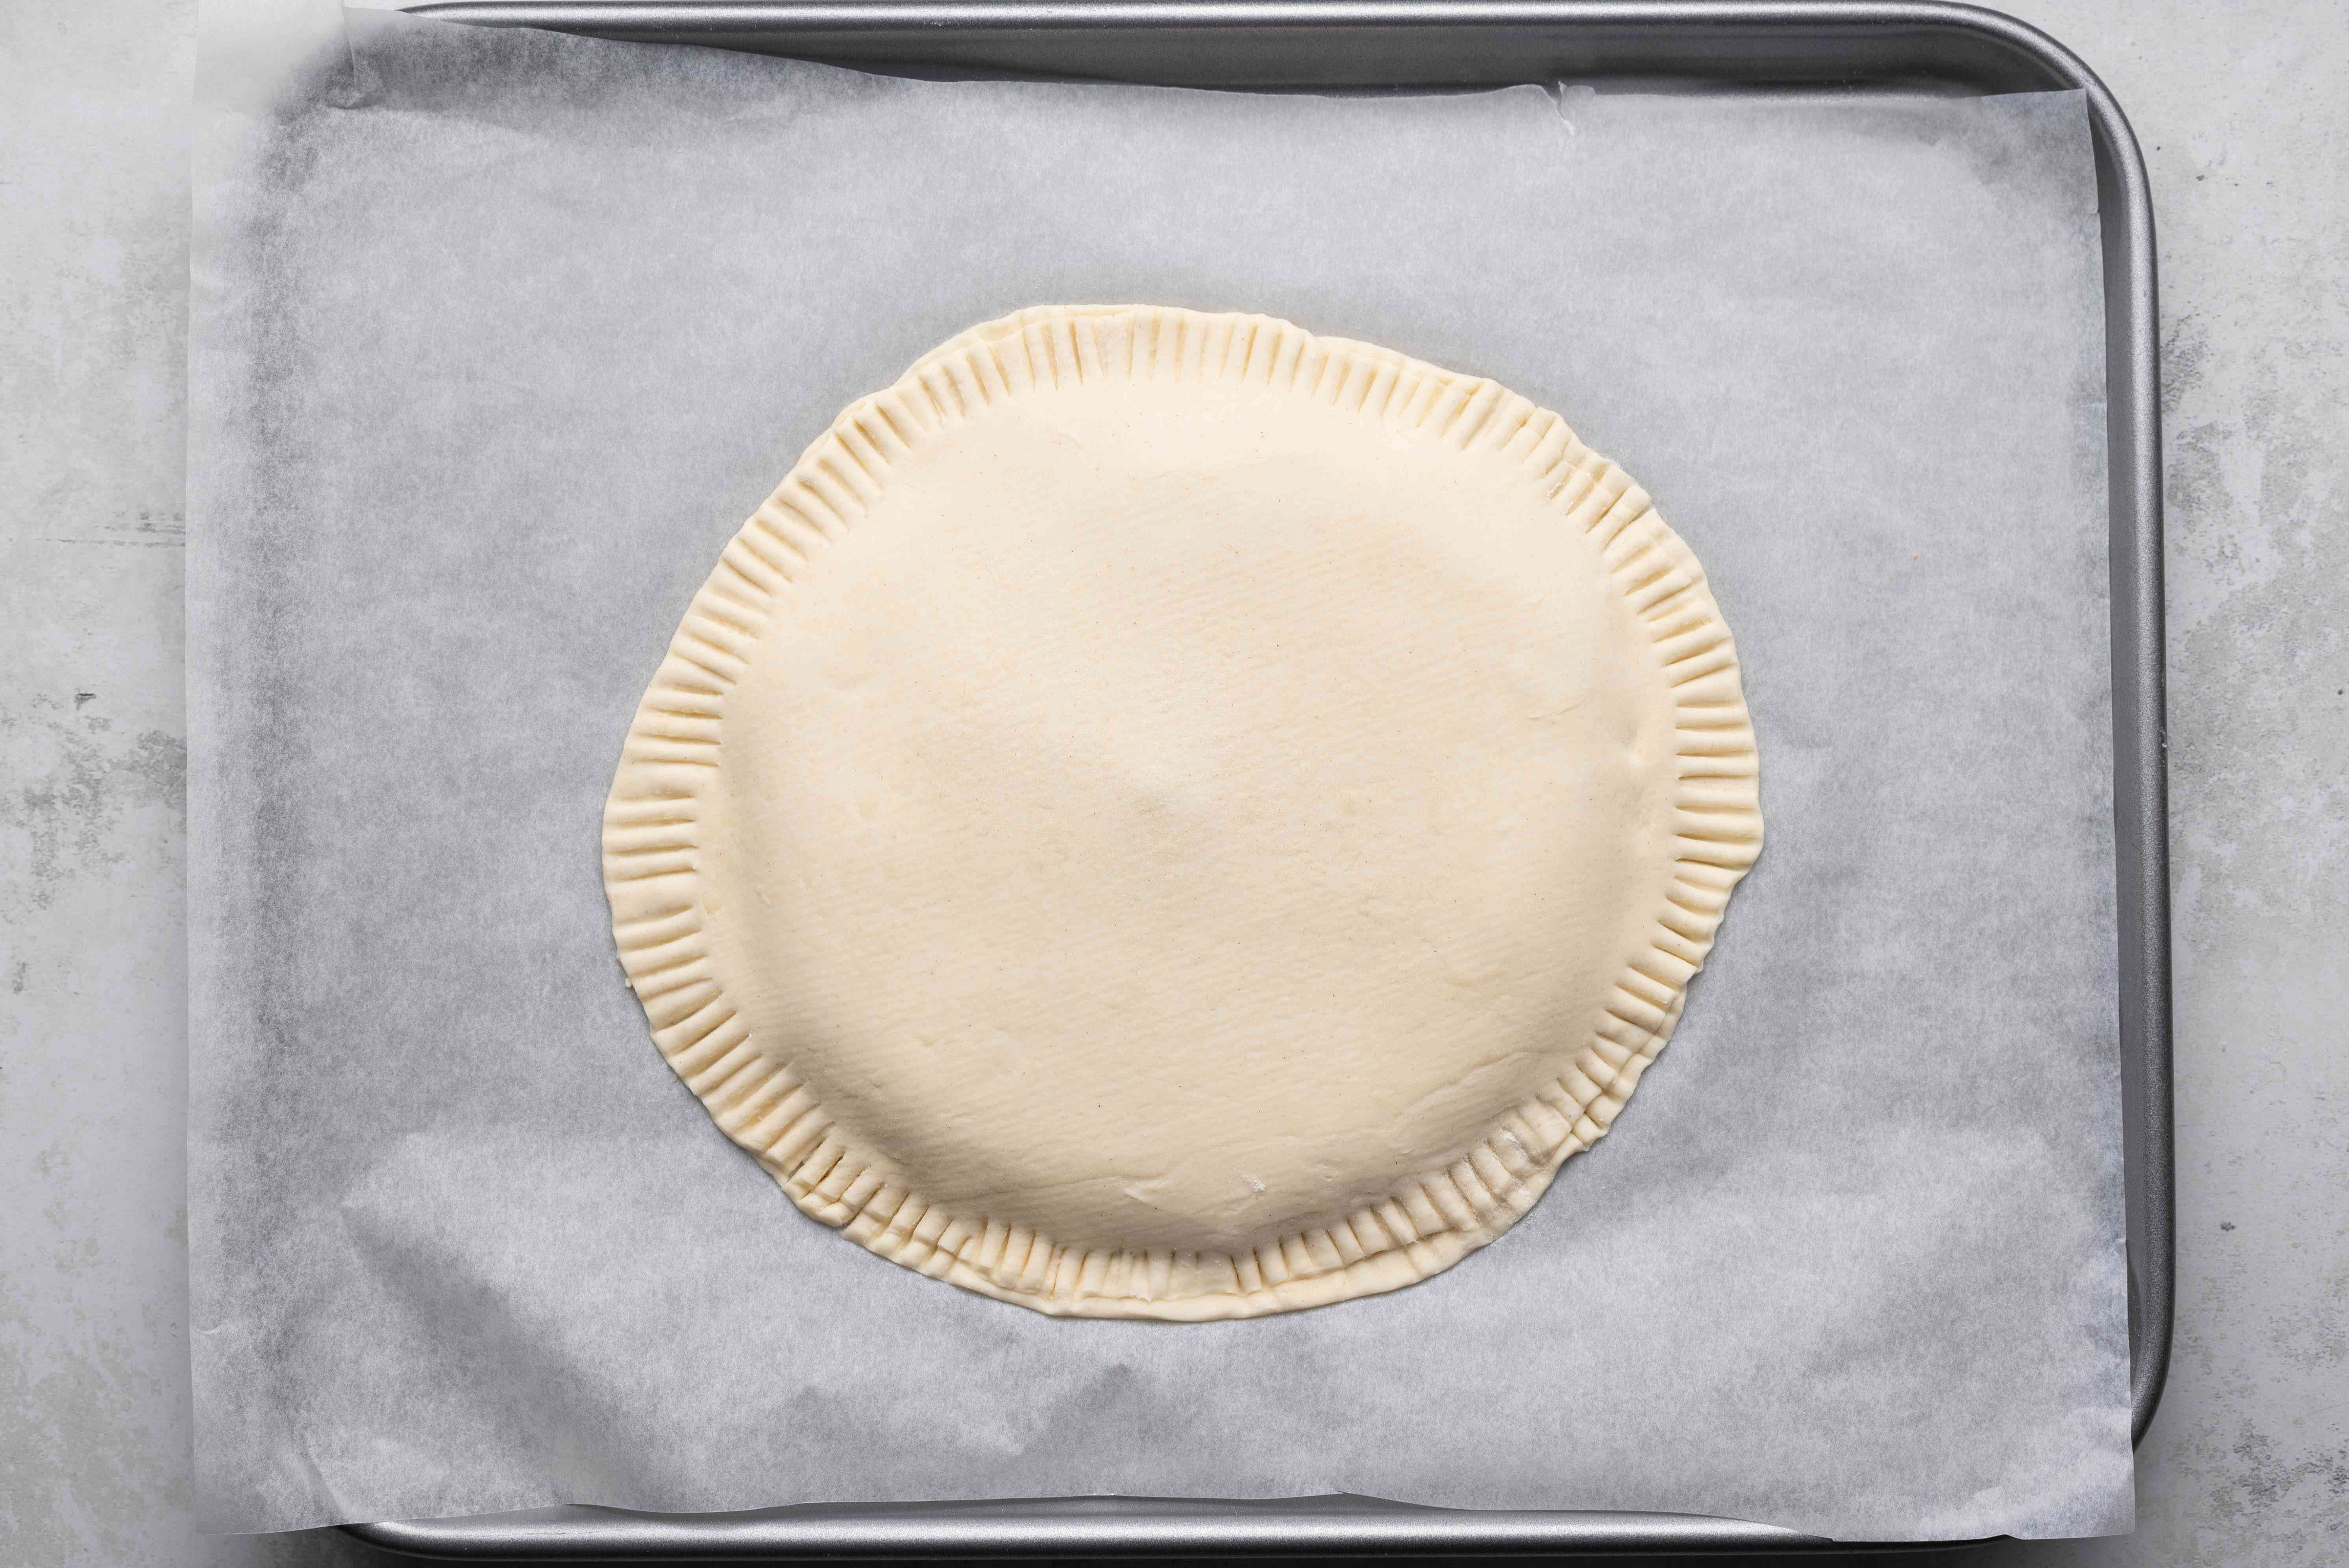 Place second puff pastry disc on top of filling, and crimp edges on a baking sheet